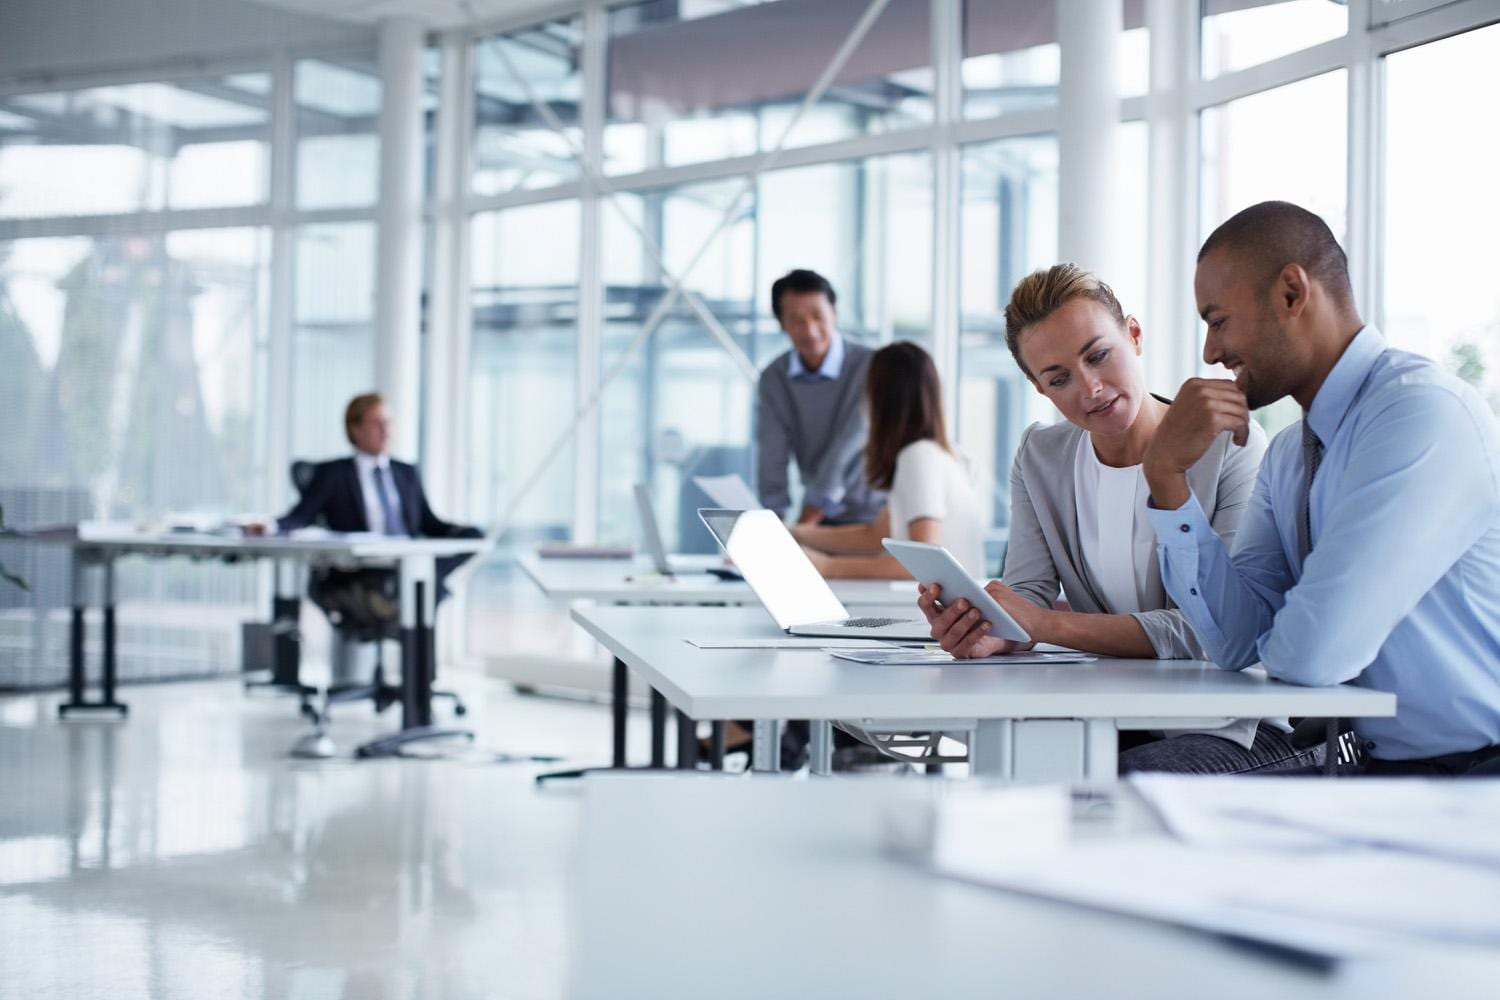 Business colleagues discussing over digital table at office desk